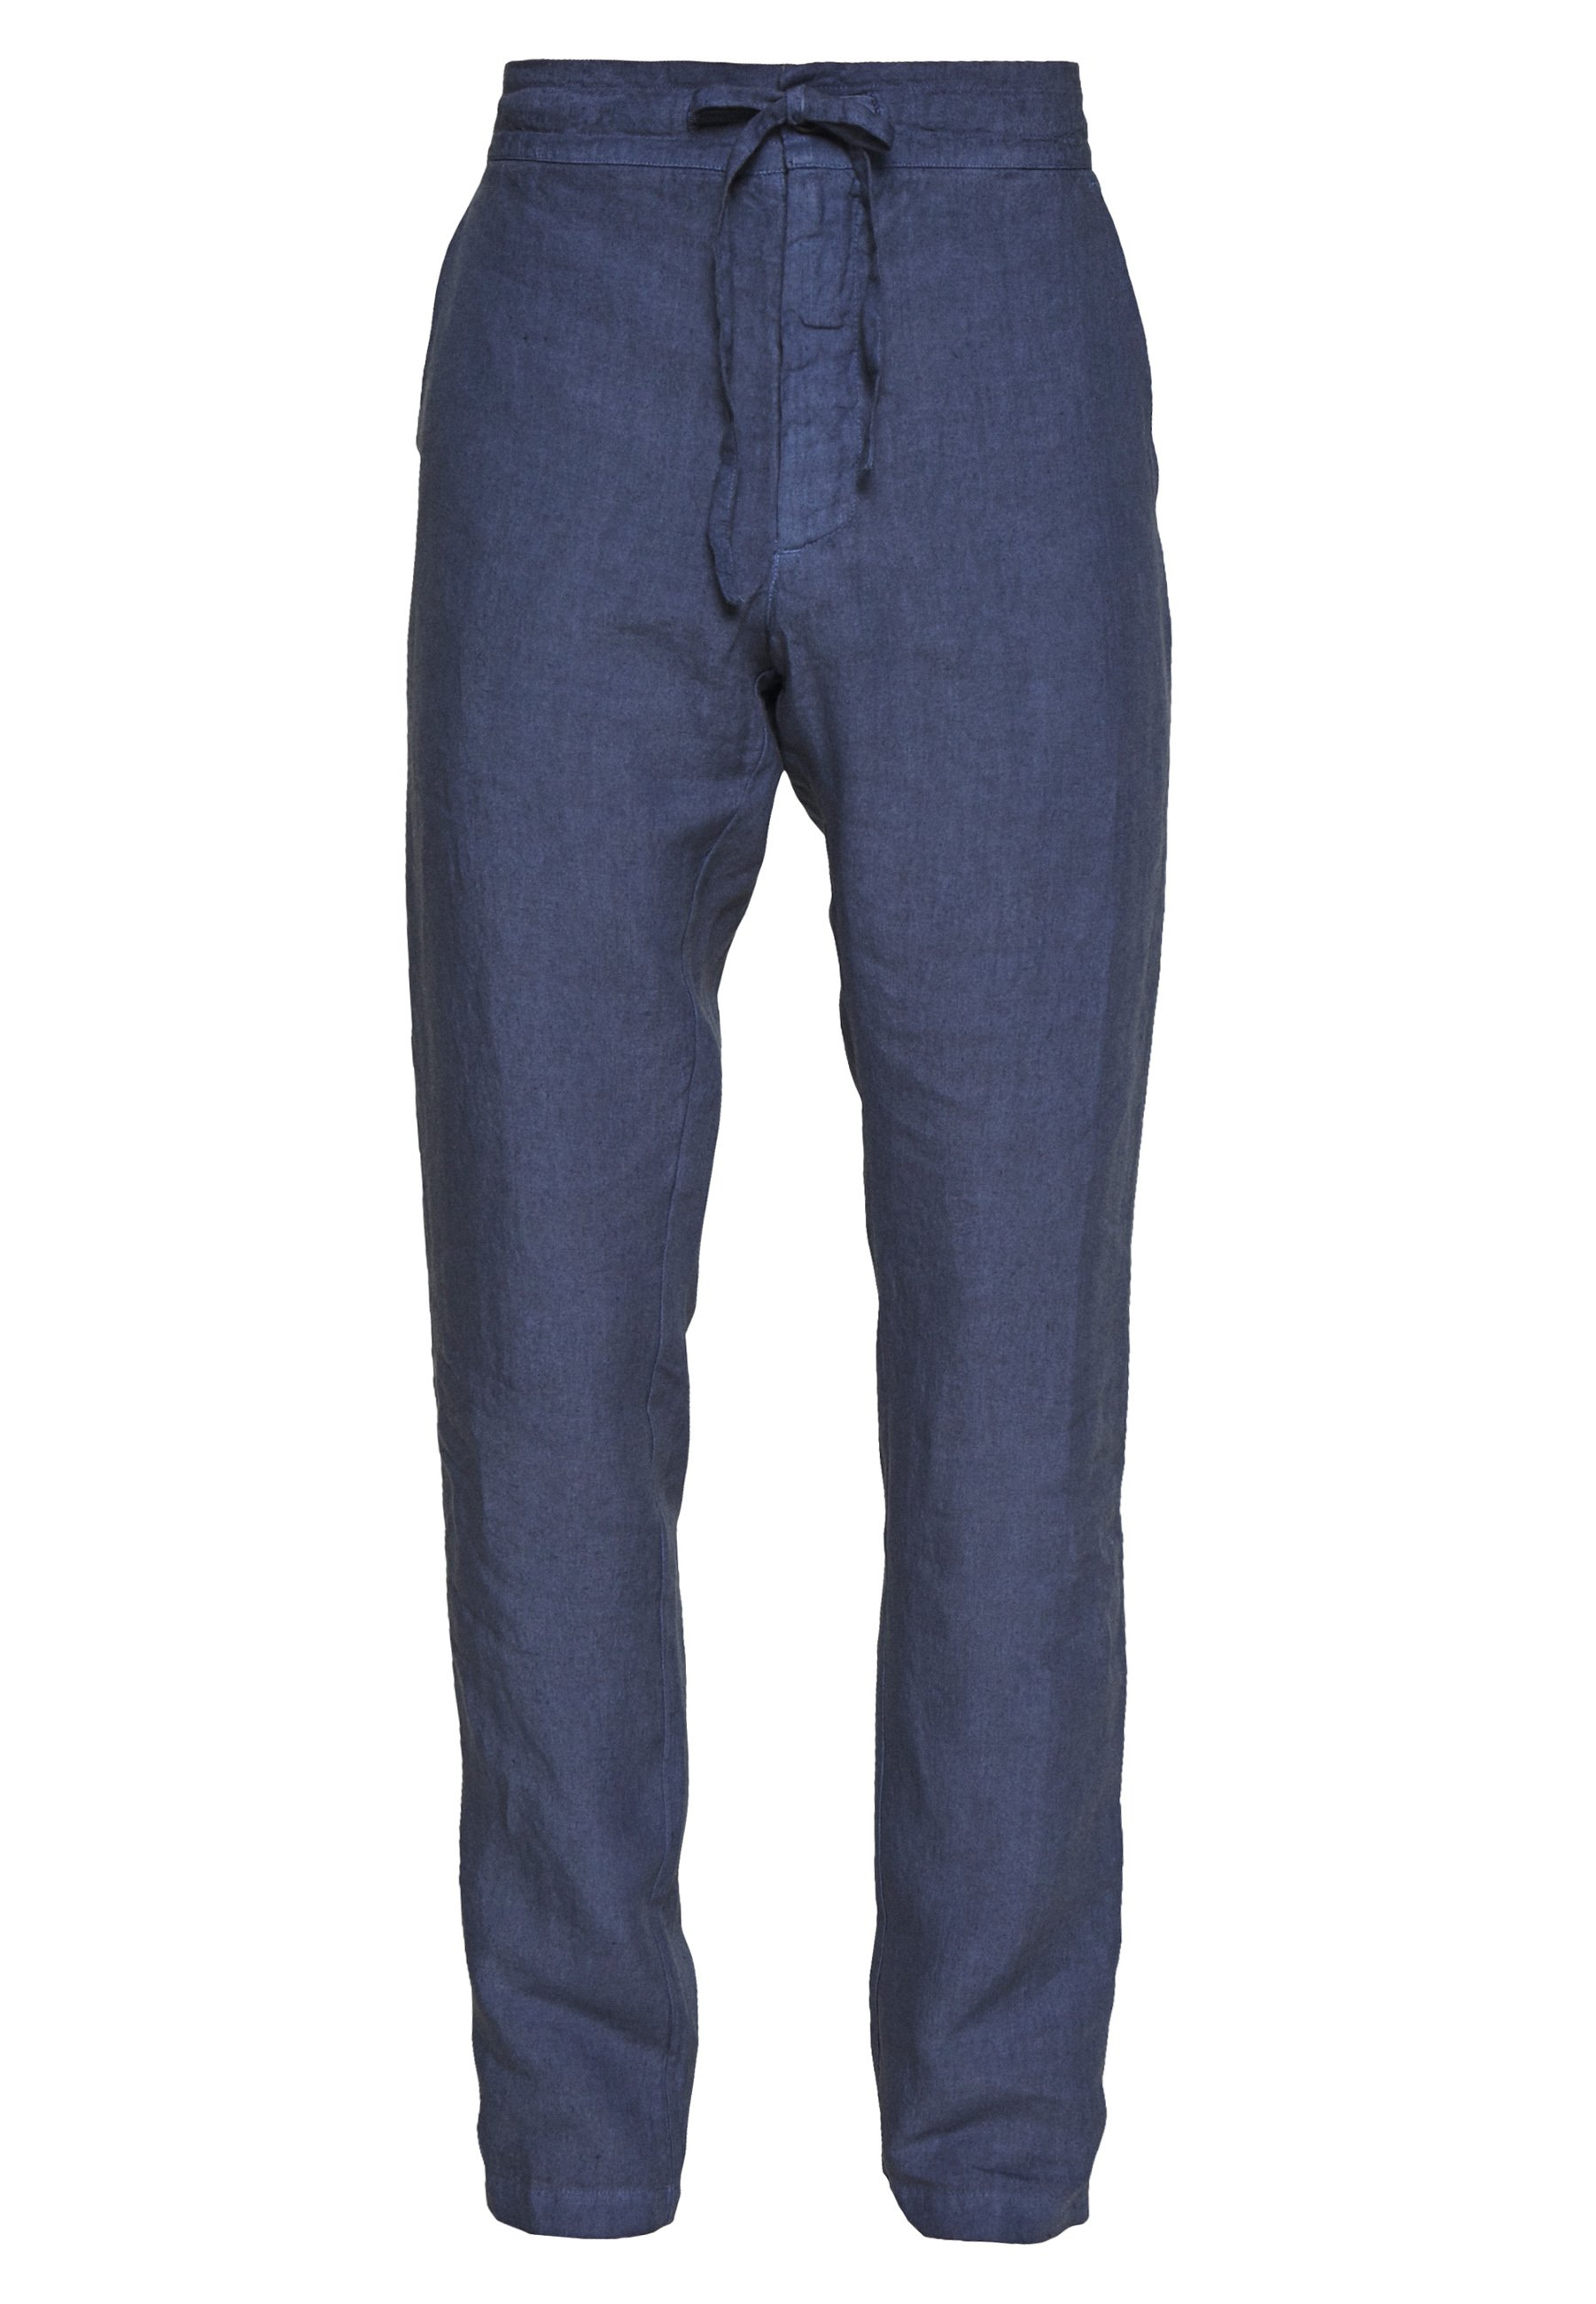 120% Lino Trousers - Tygbyxor Dark Blue Fade